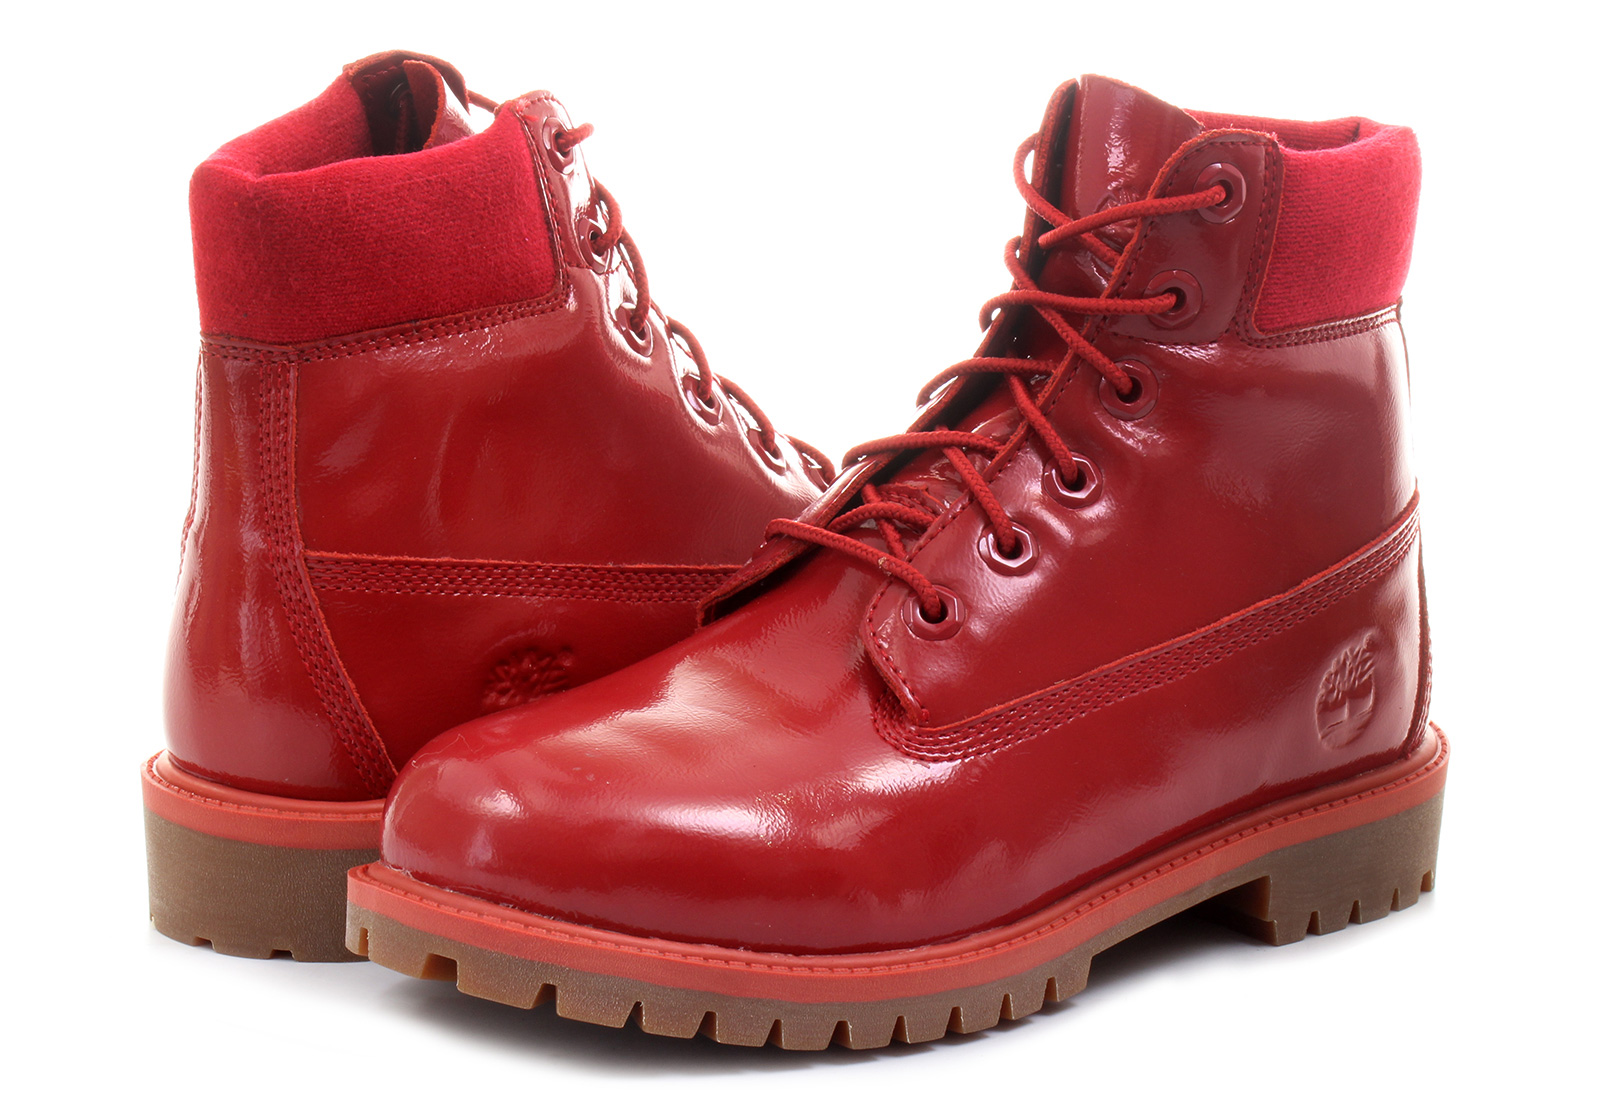 Timberland Topánky - 6 Inch Premium Boot - a151b-ros - Tenisky ... 5a36087a89f